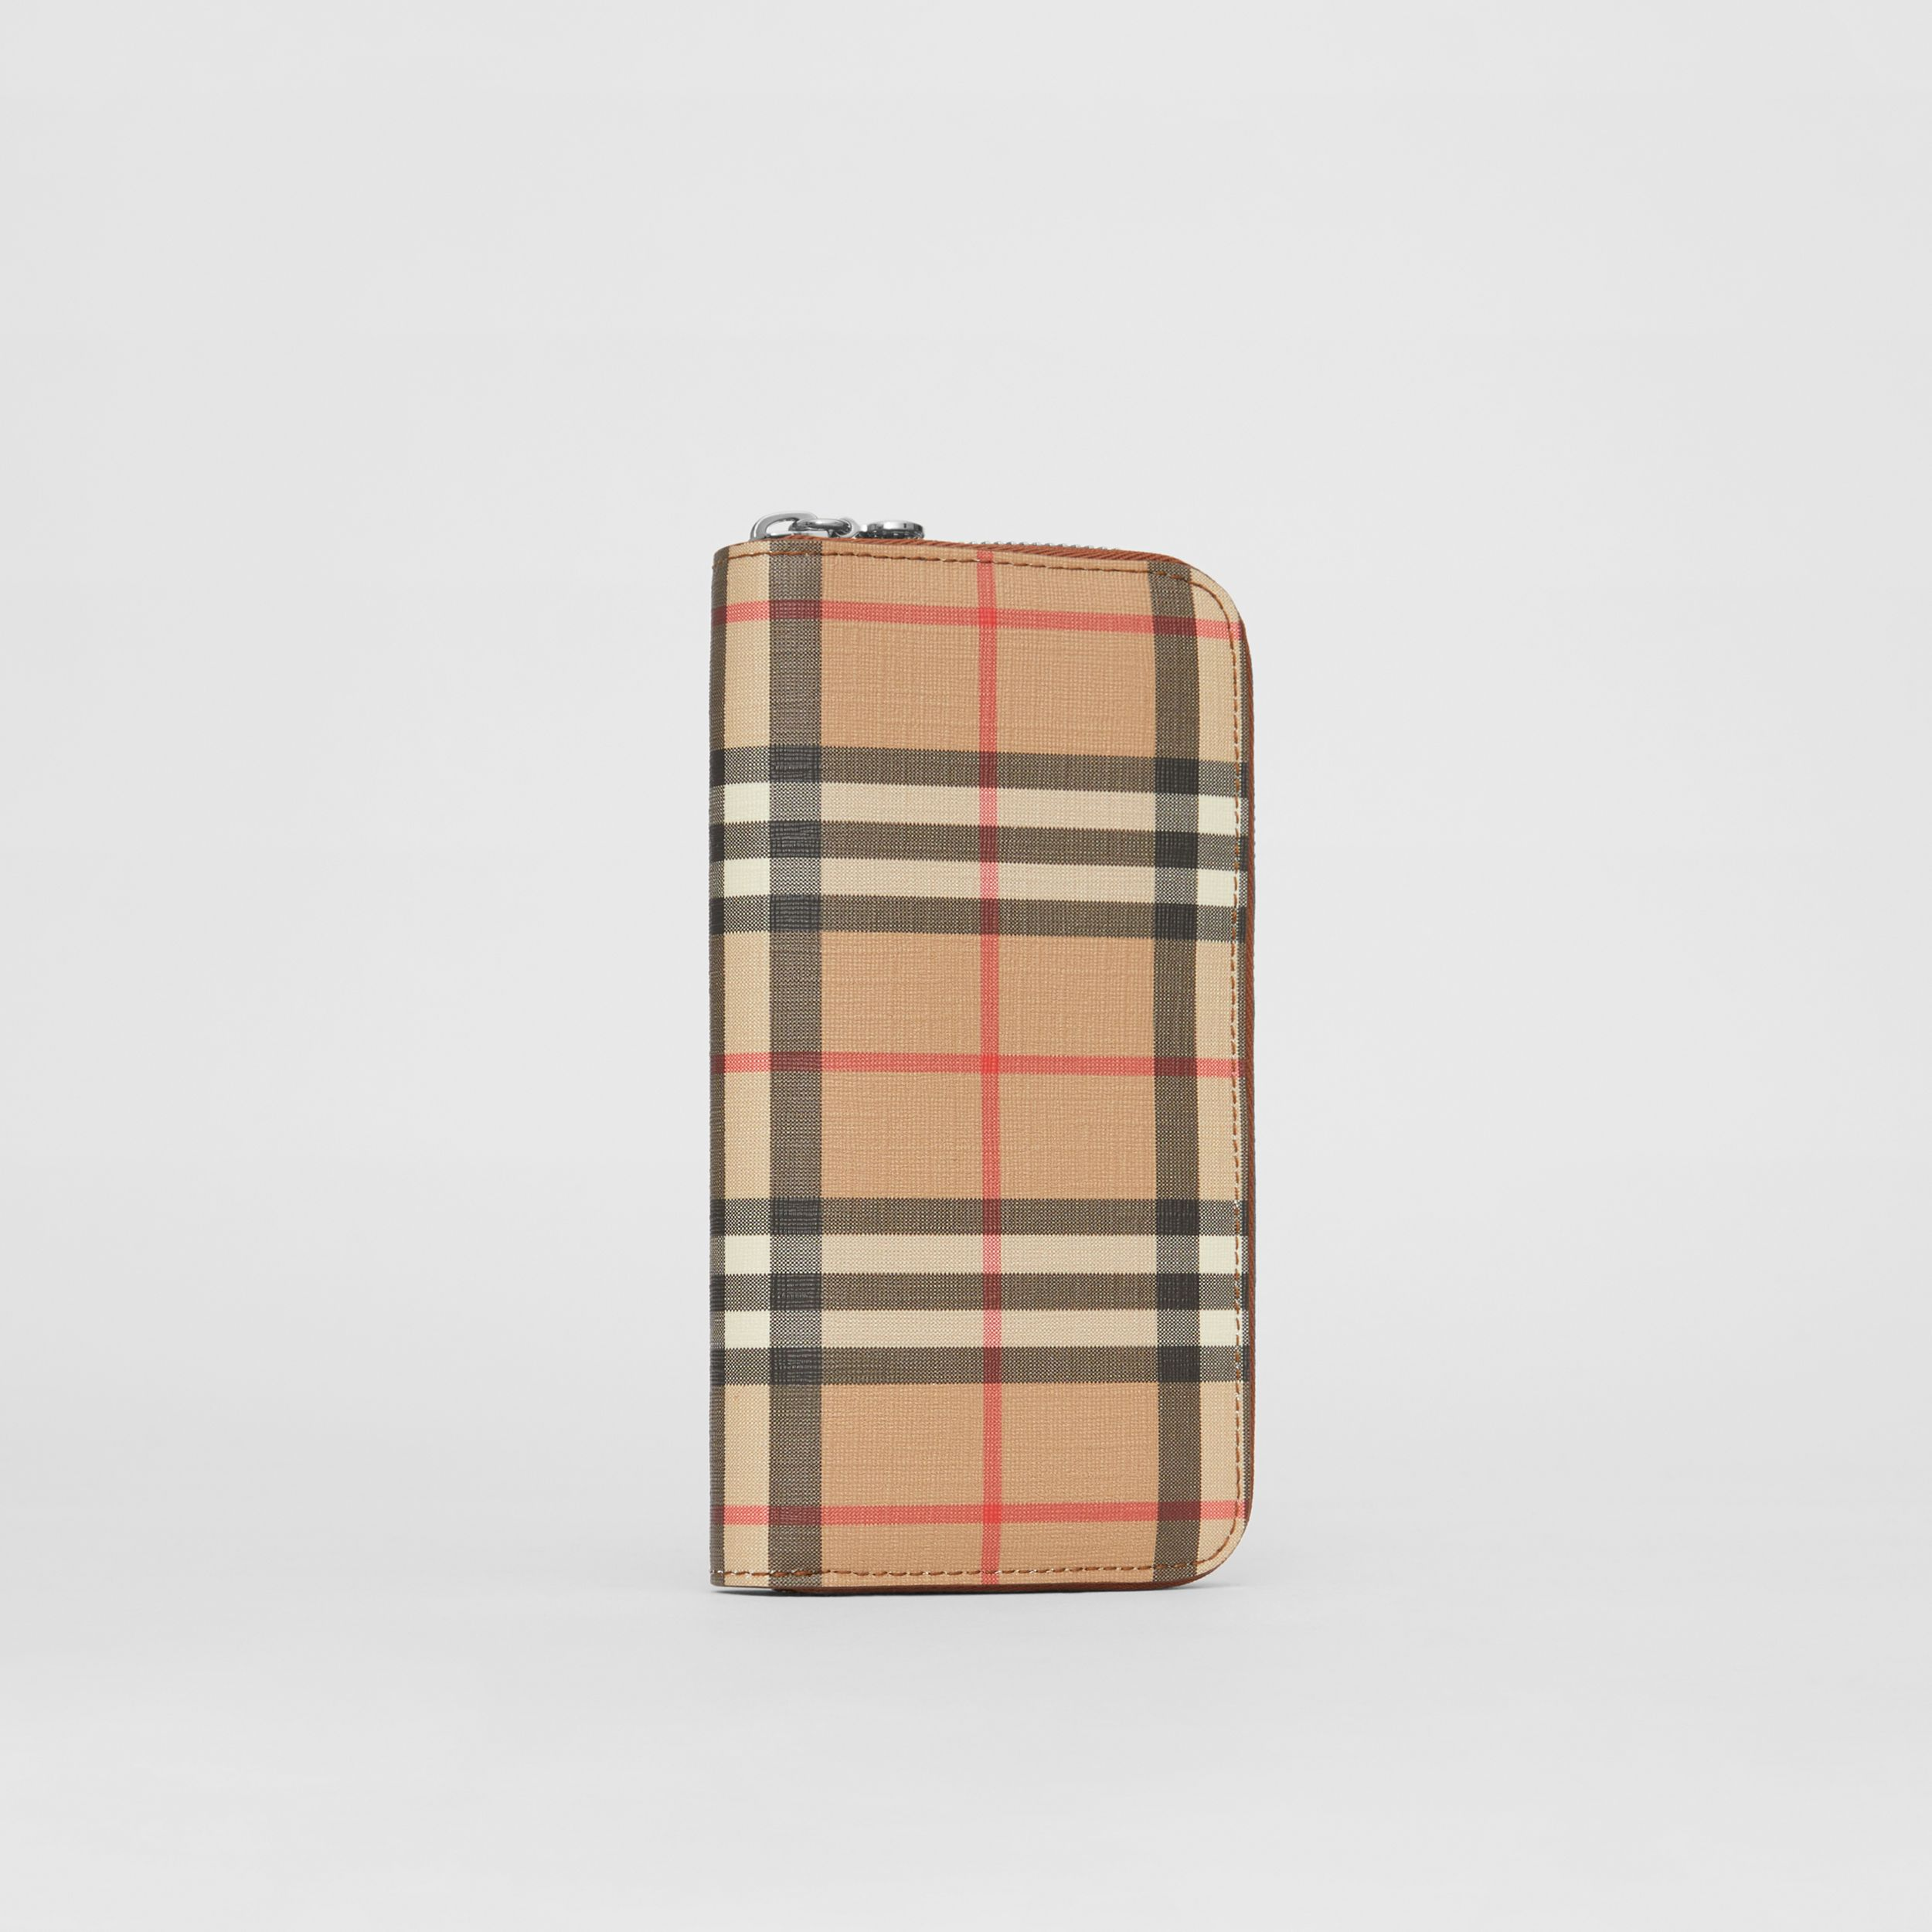 Vintage Check and Leather Ziparound Wallet in Malt Brown - Women | Burberry - 4